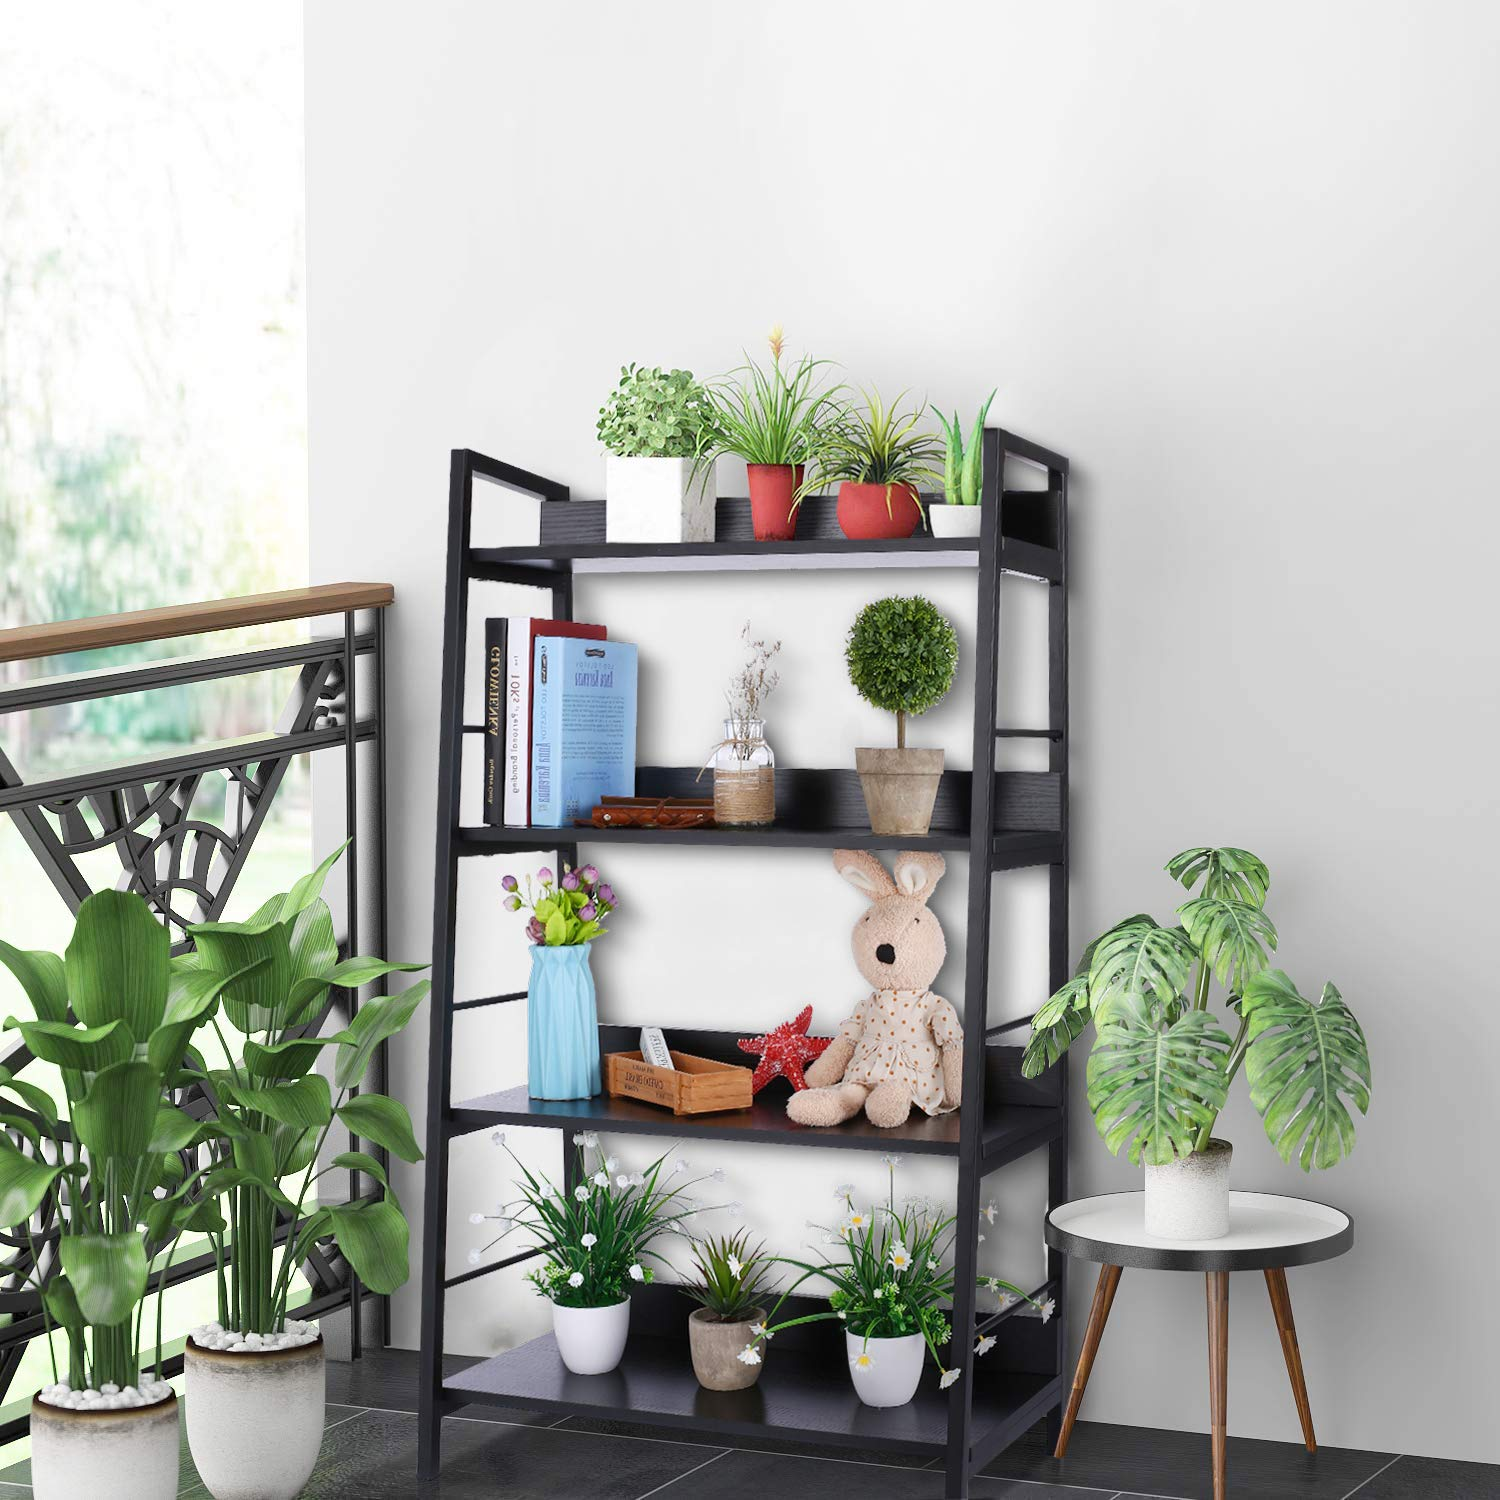 Yincuiok Ladder Bookshelf 4 Shelf Wood Metal Open Bookcase Industrial Modern Rustic Tall Trestle Bookcases for Home Office, Rustic Black